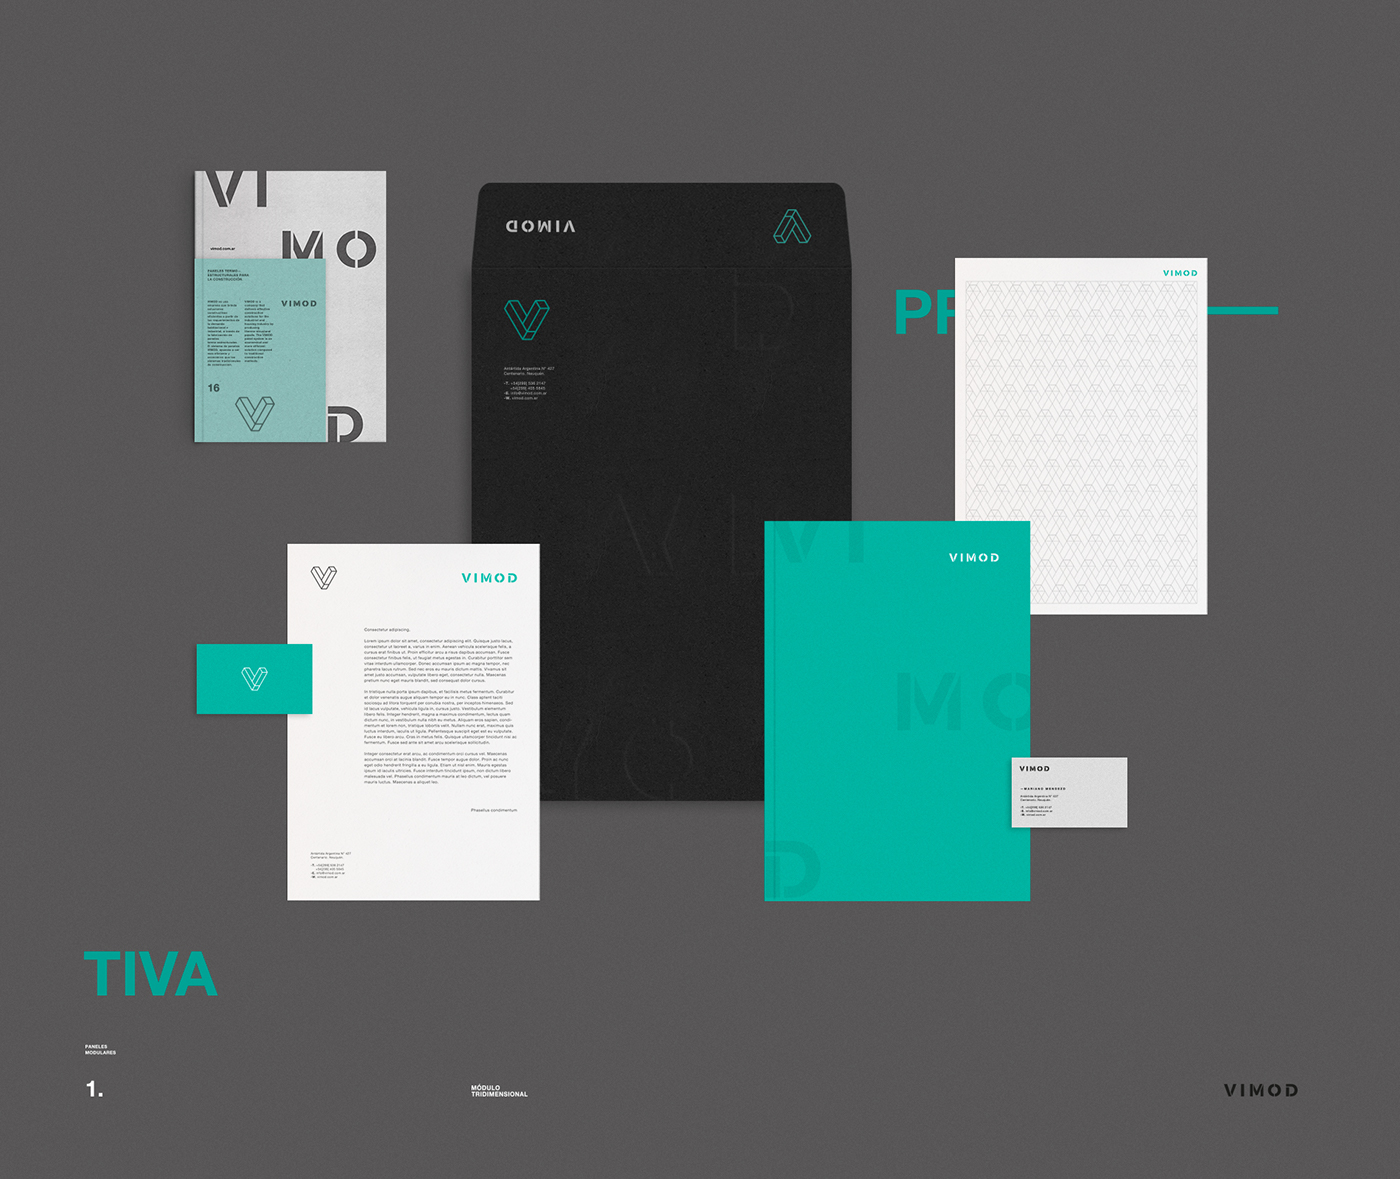 Awesome Brand Identity for VIMOD by Hachetresele